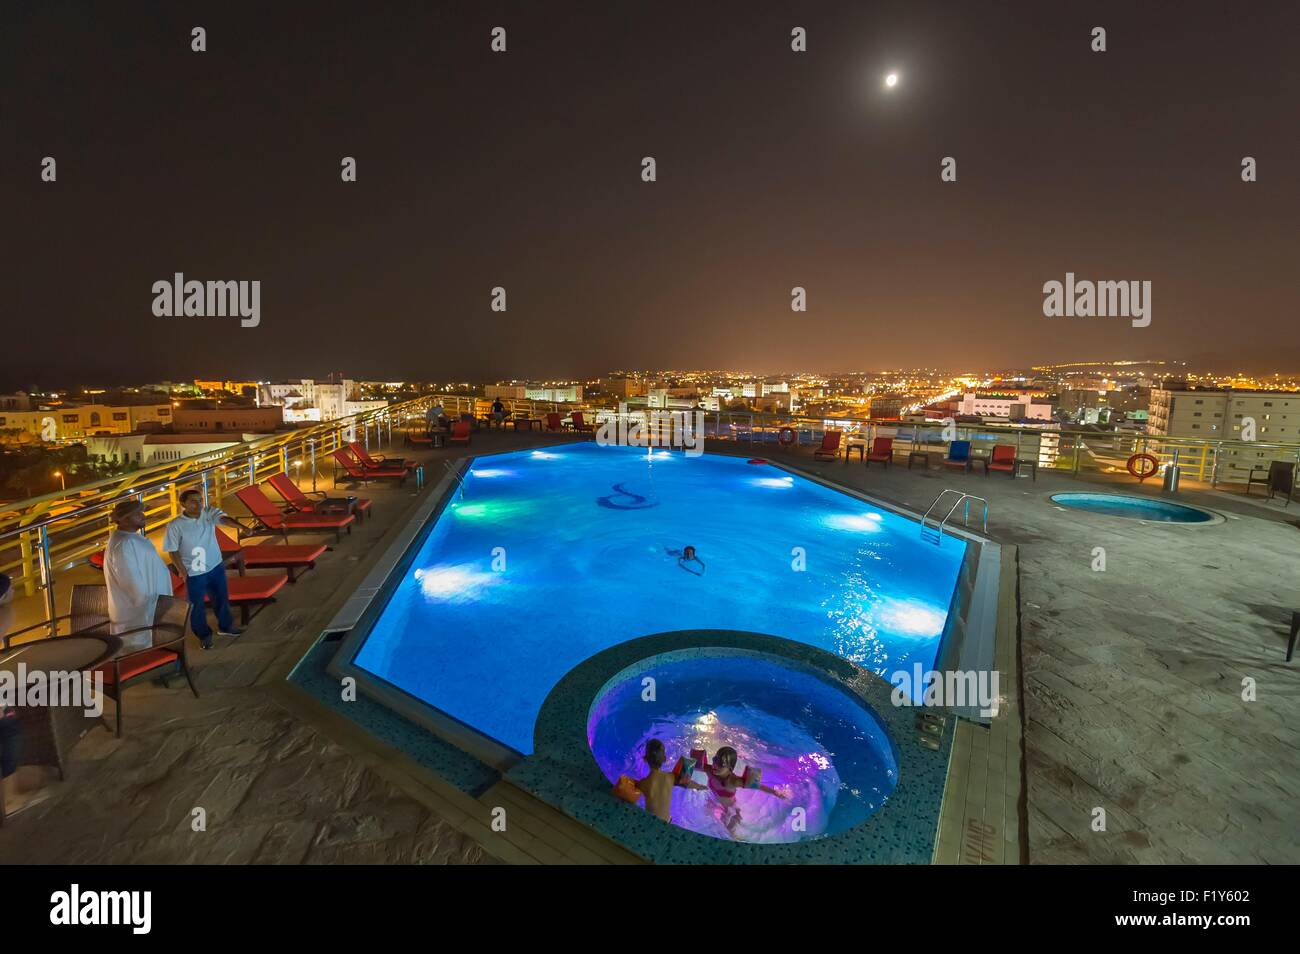 Oman, Muscat, All Seasons Hotel, roof top swimming pool - Stock Image